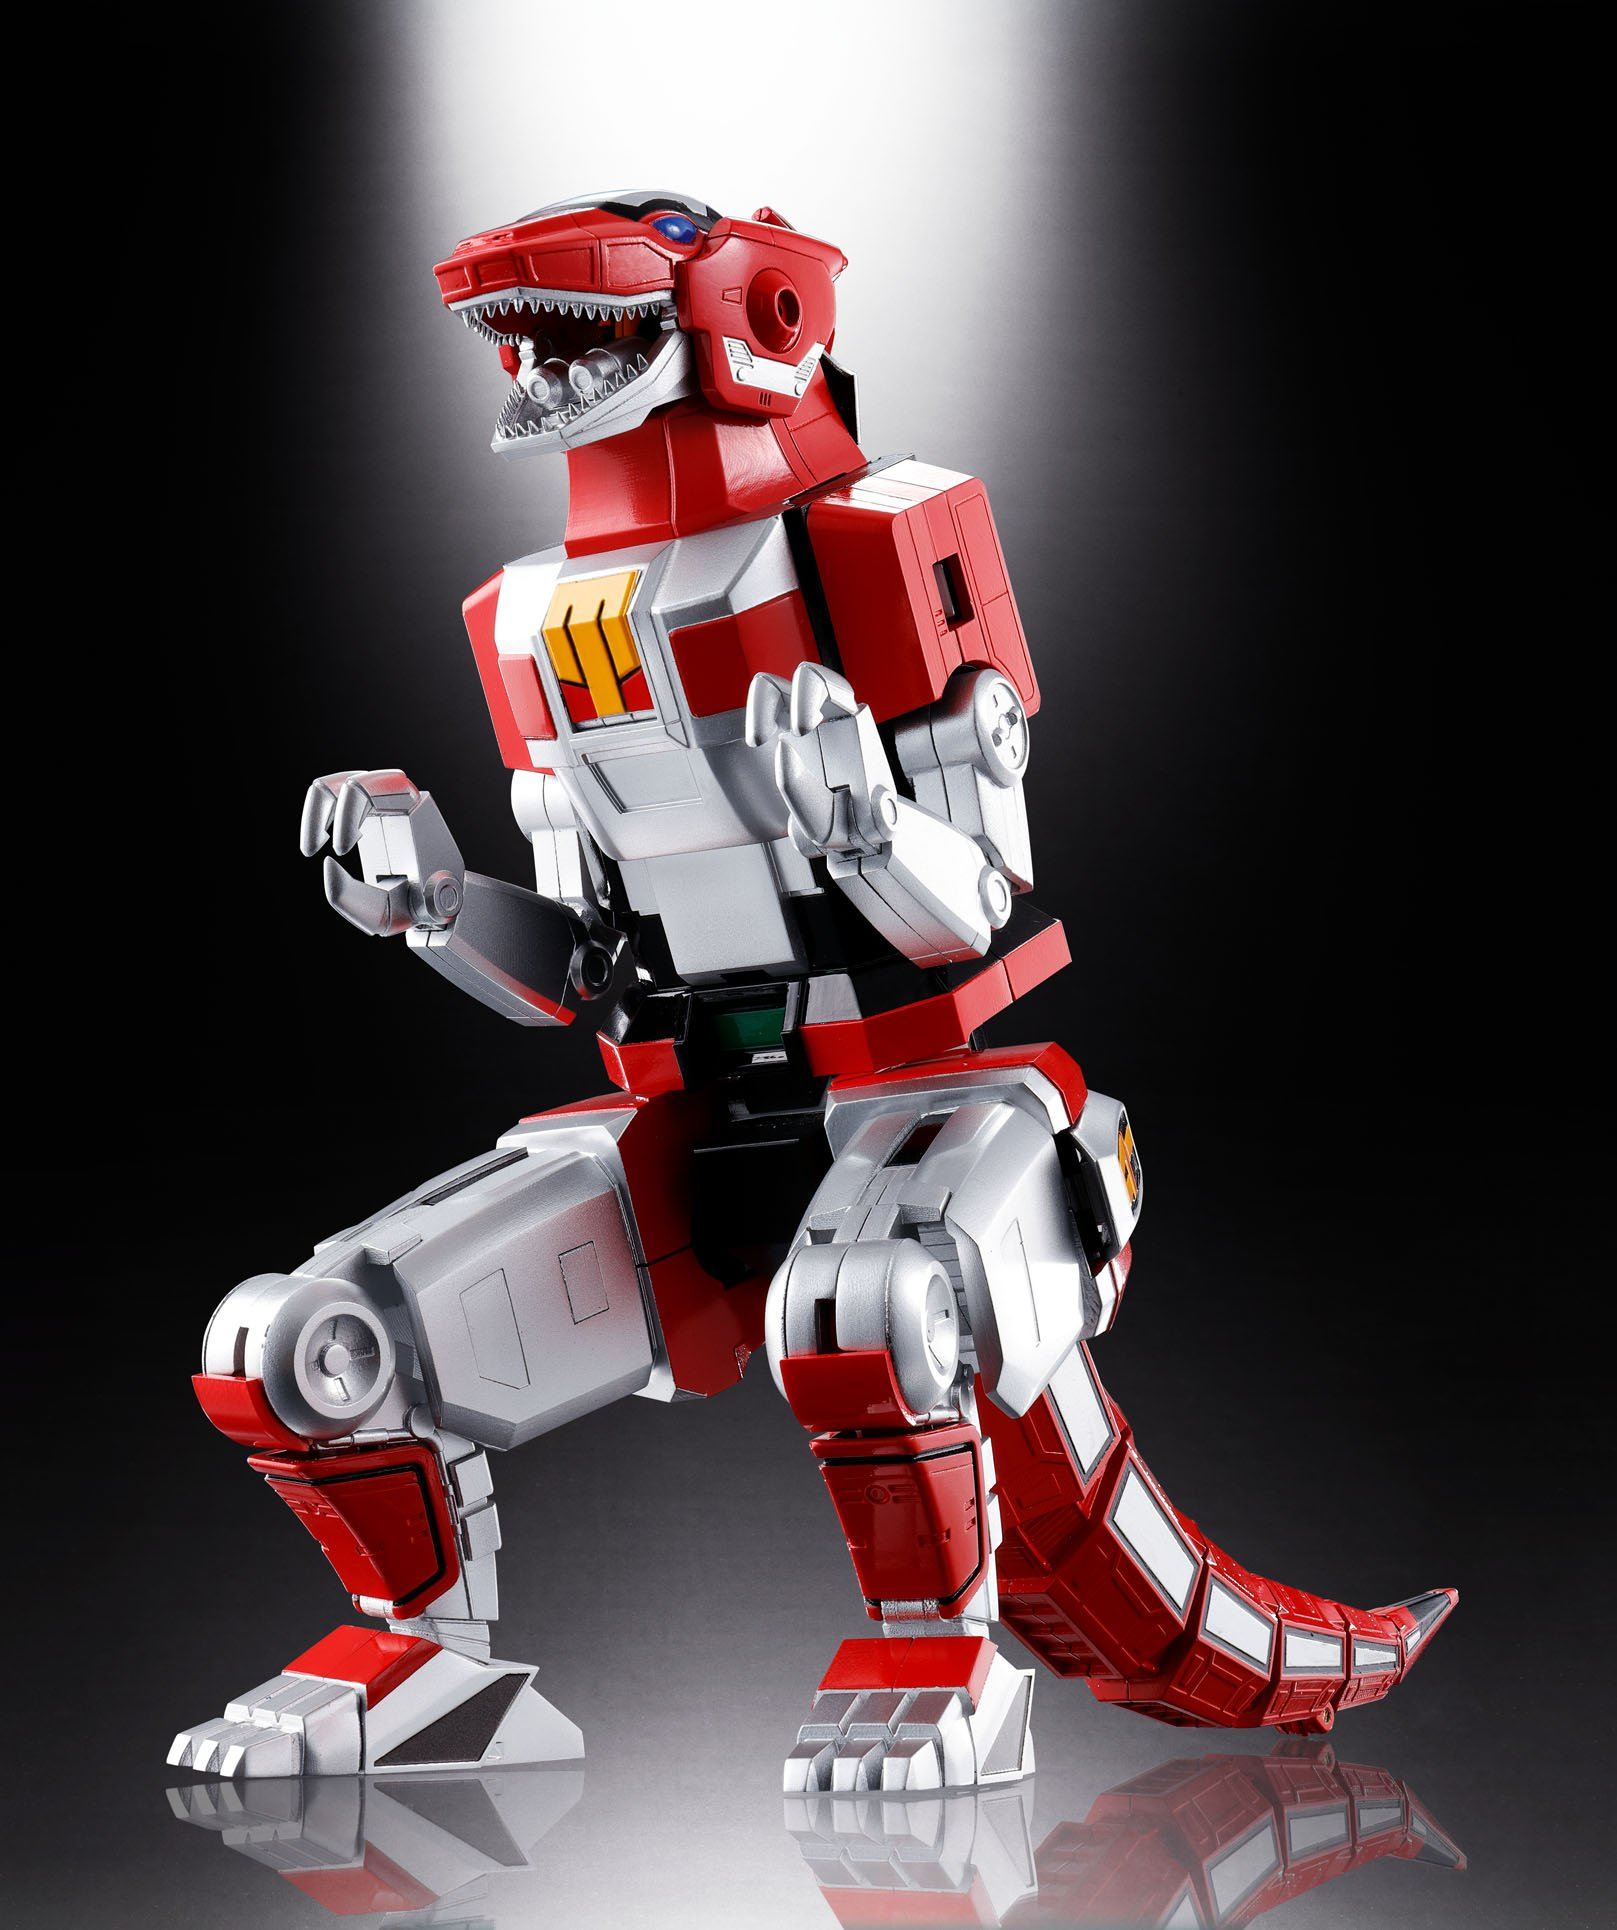 Bandai Tamashii Nations Soul of Chogokin Mighty Morphing Power Rangers Action Figure by Bandai (Image #3)